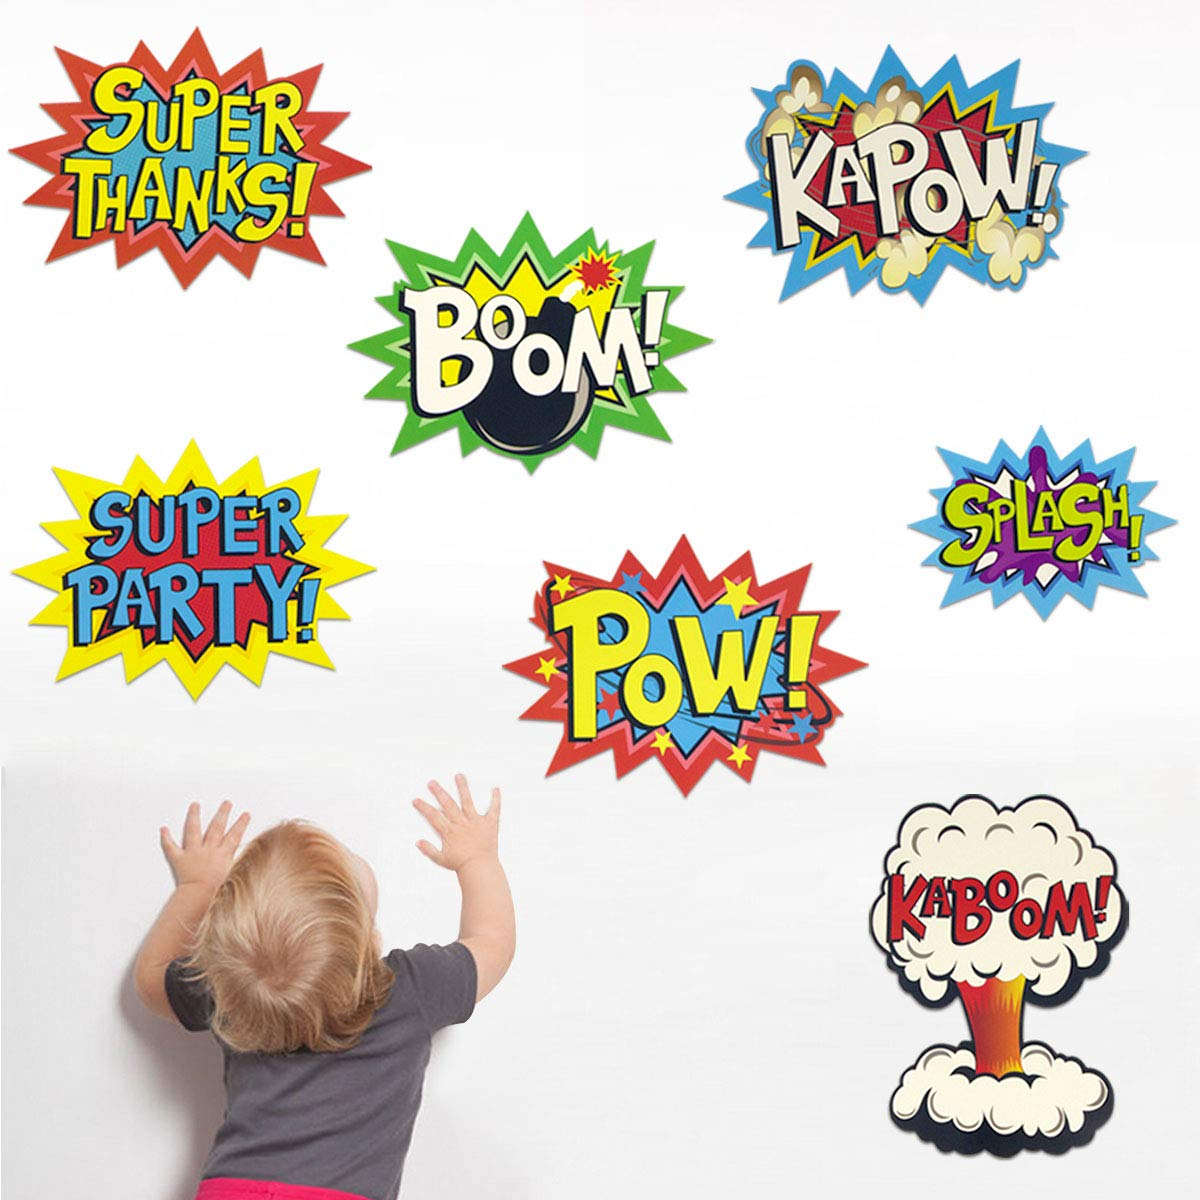 Large Superhero Action Signs Cutouts 12PCS Words and Cityscape Cut-Outs for Party Decoration by Fancy Land (Image #4)